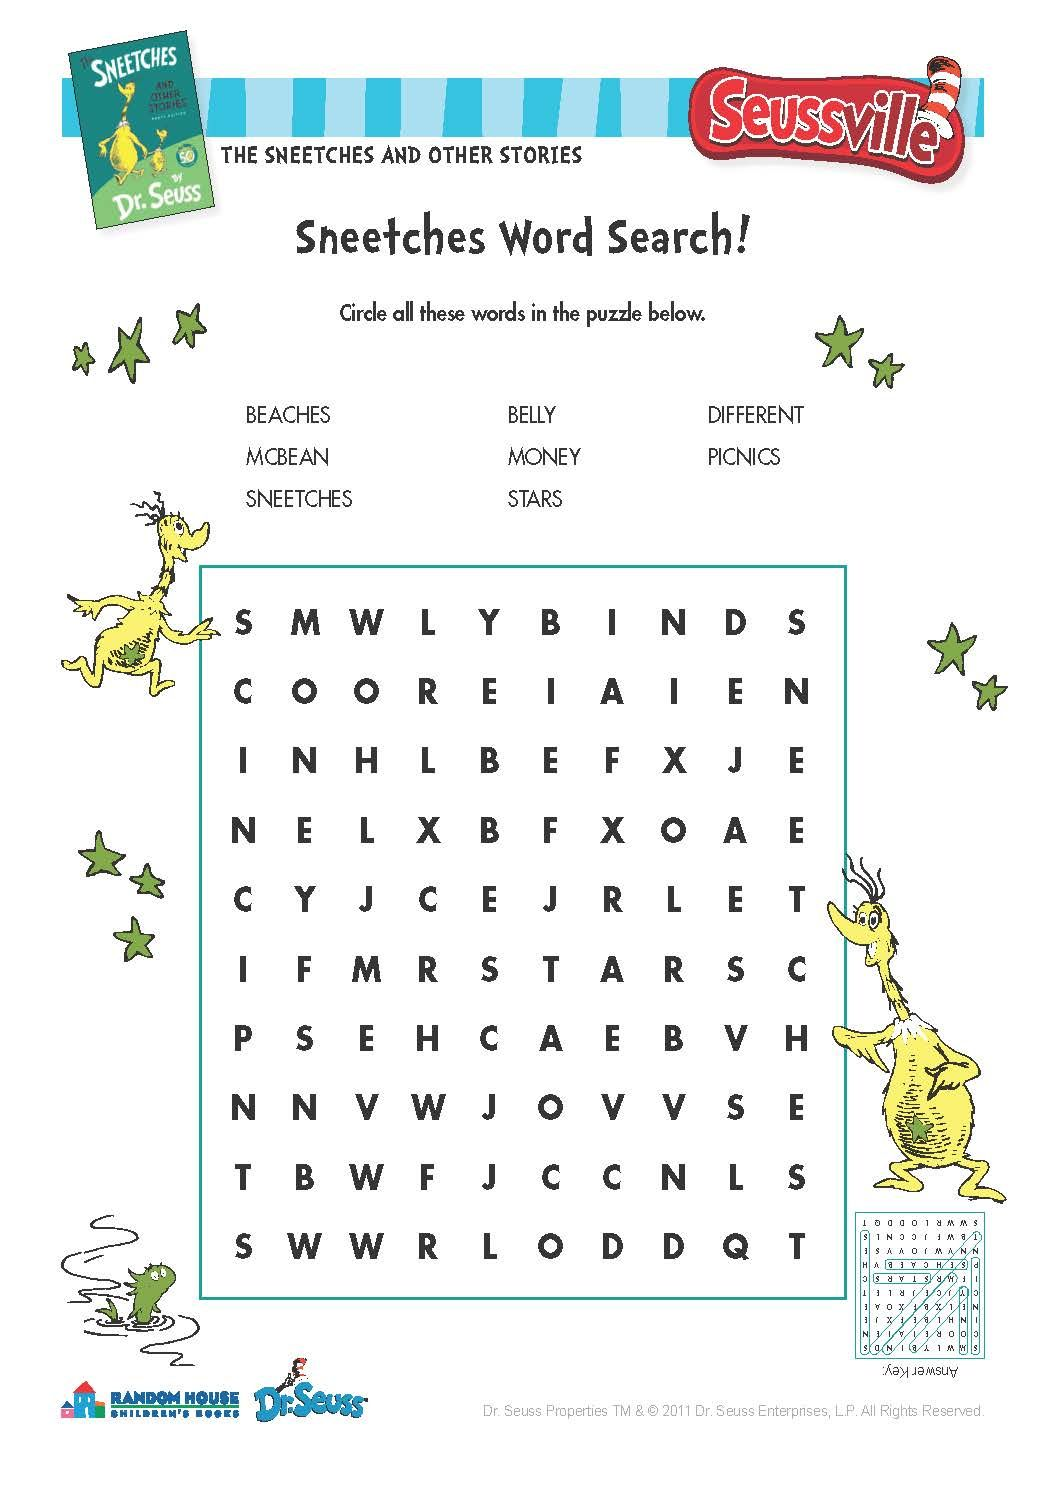 The Sneetches Word Search